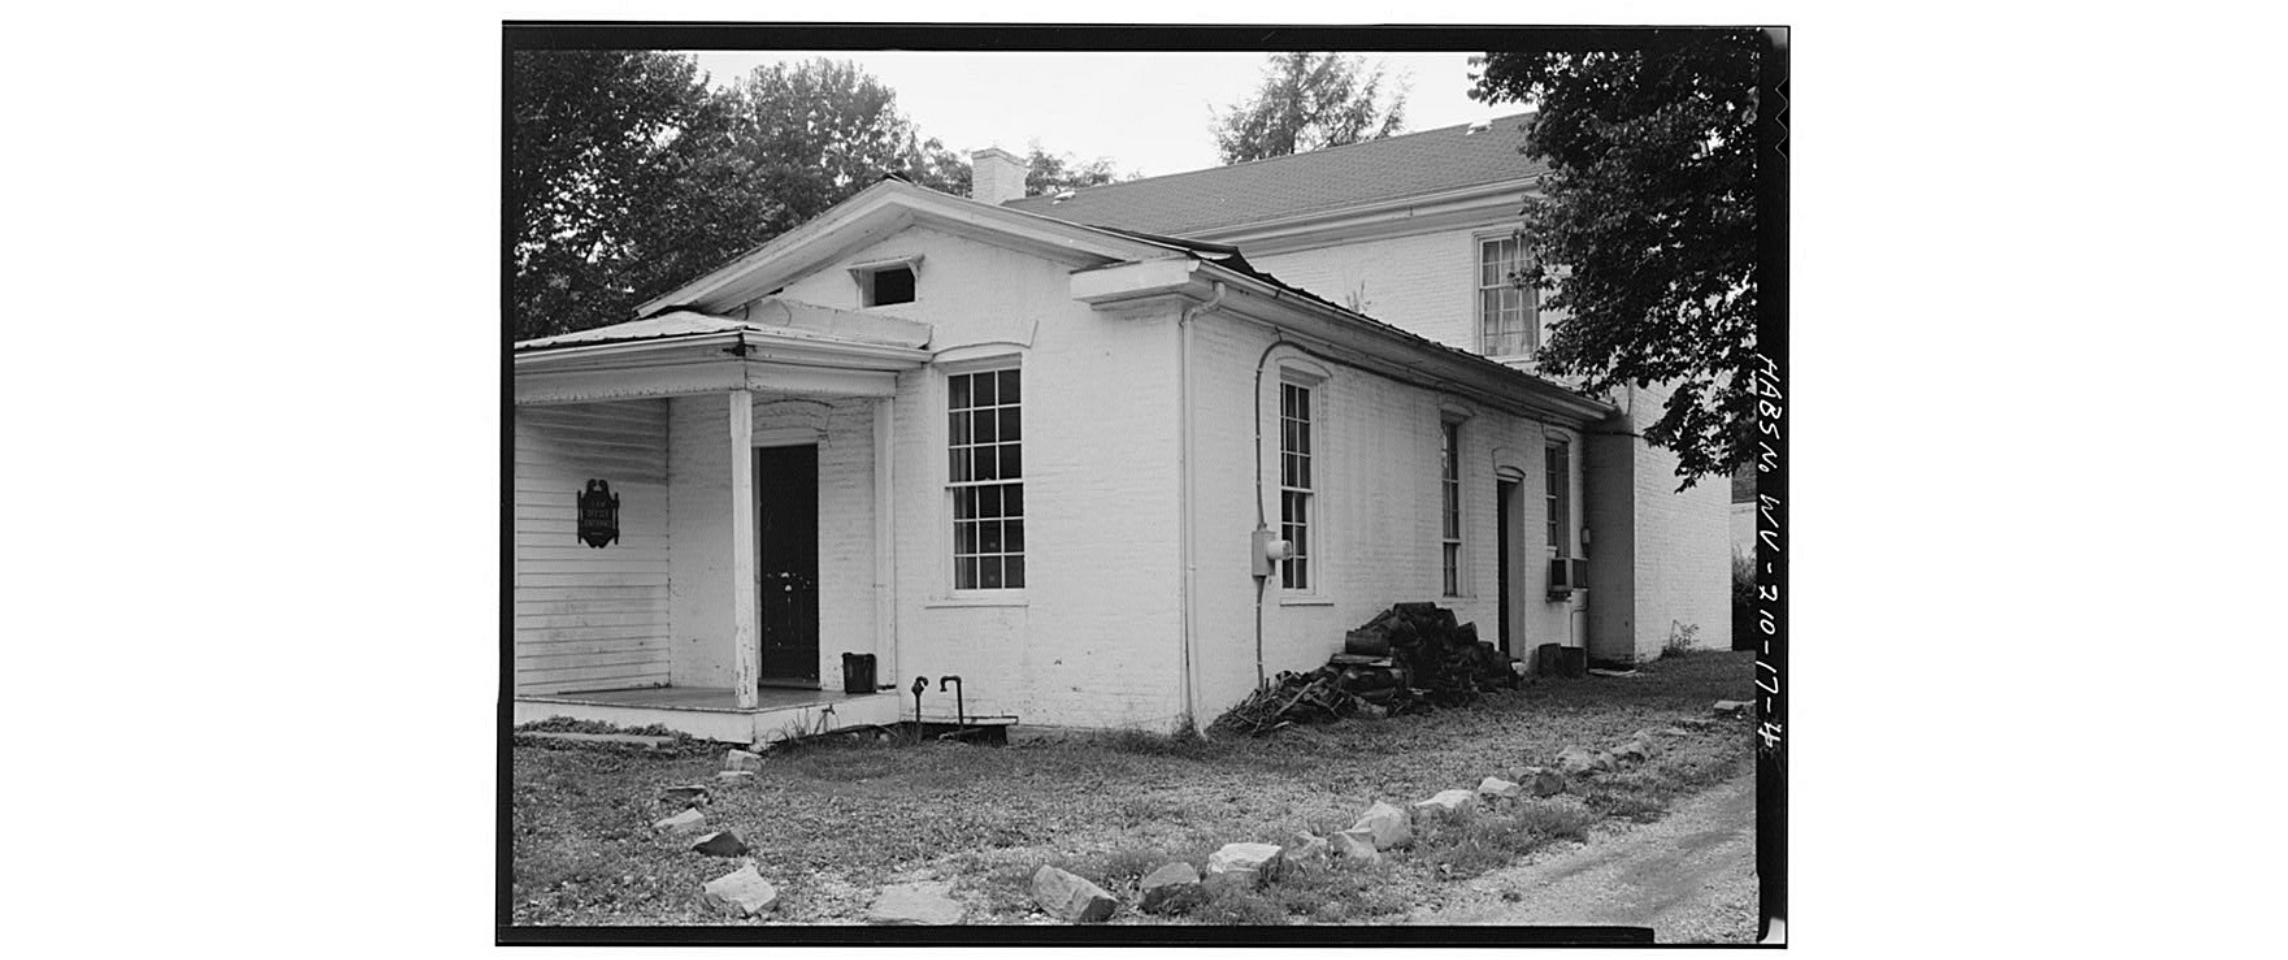 Rear wing, looking southwest at the Putney House, circa 1980